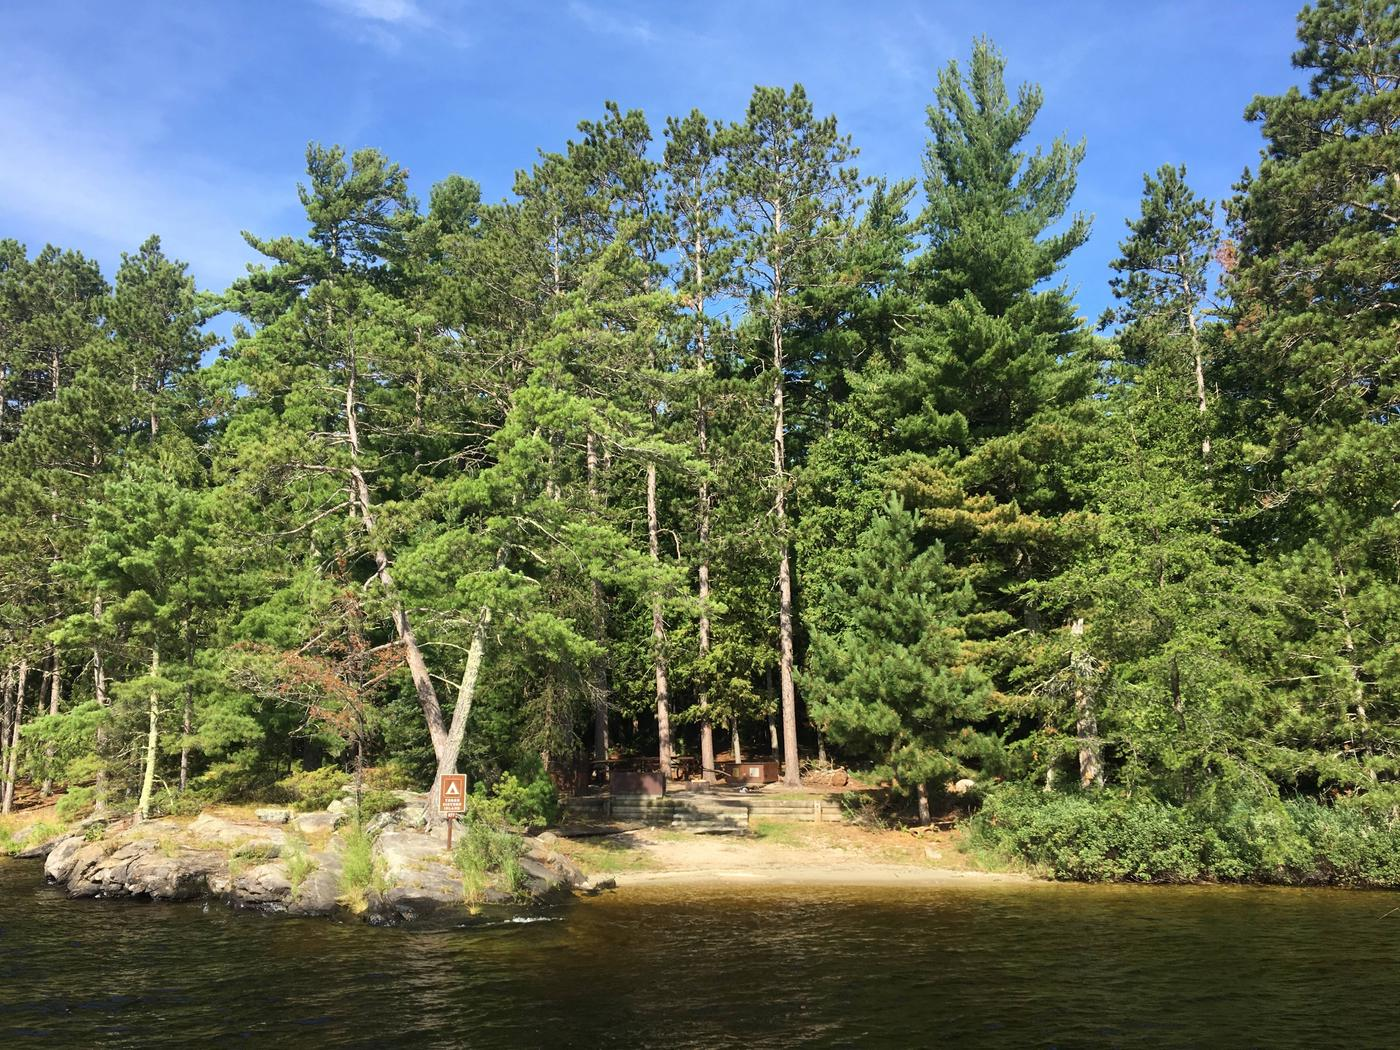 R77 - Three Sisters IslandR77 - Three Sisters Island campsite on Rainy Lake